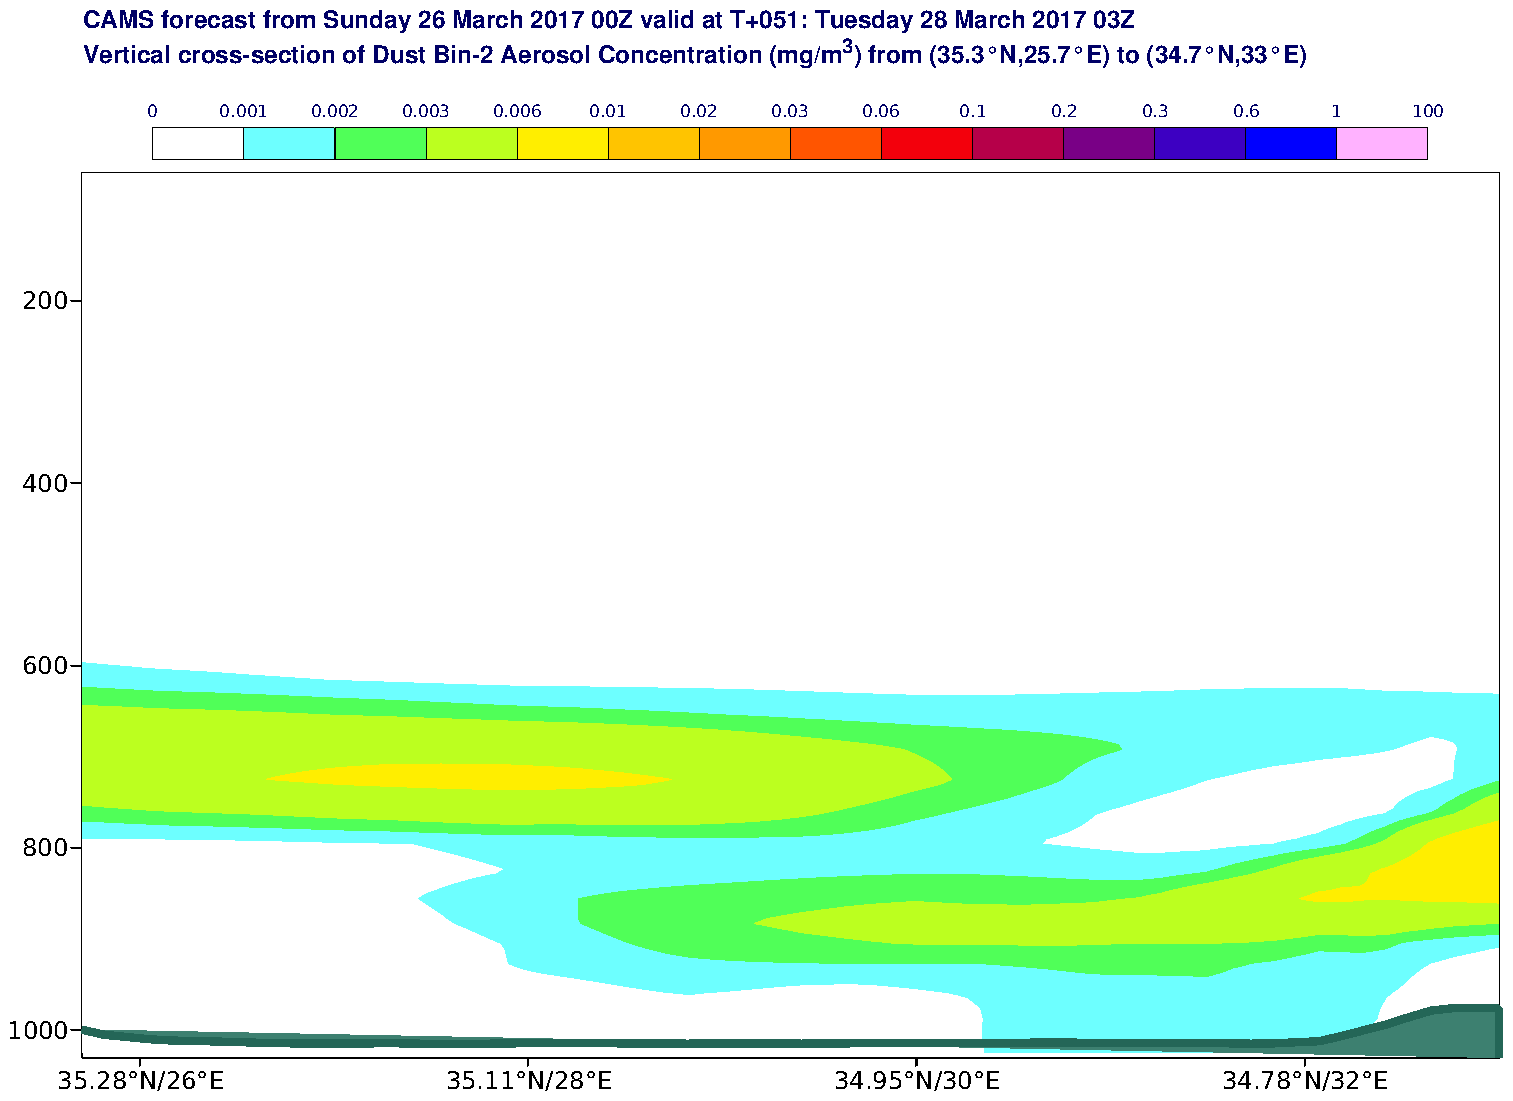 Vertical cross-section of Dust Bin-2 Aerosol Concentration (mg/m3) valid at T51 - 2017-03-28 03:00